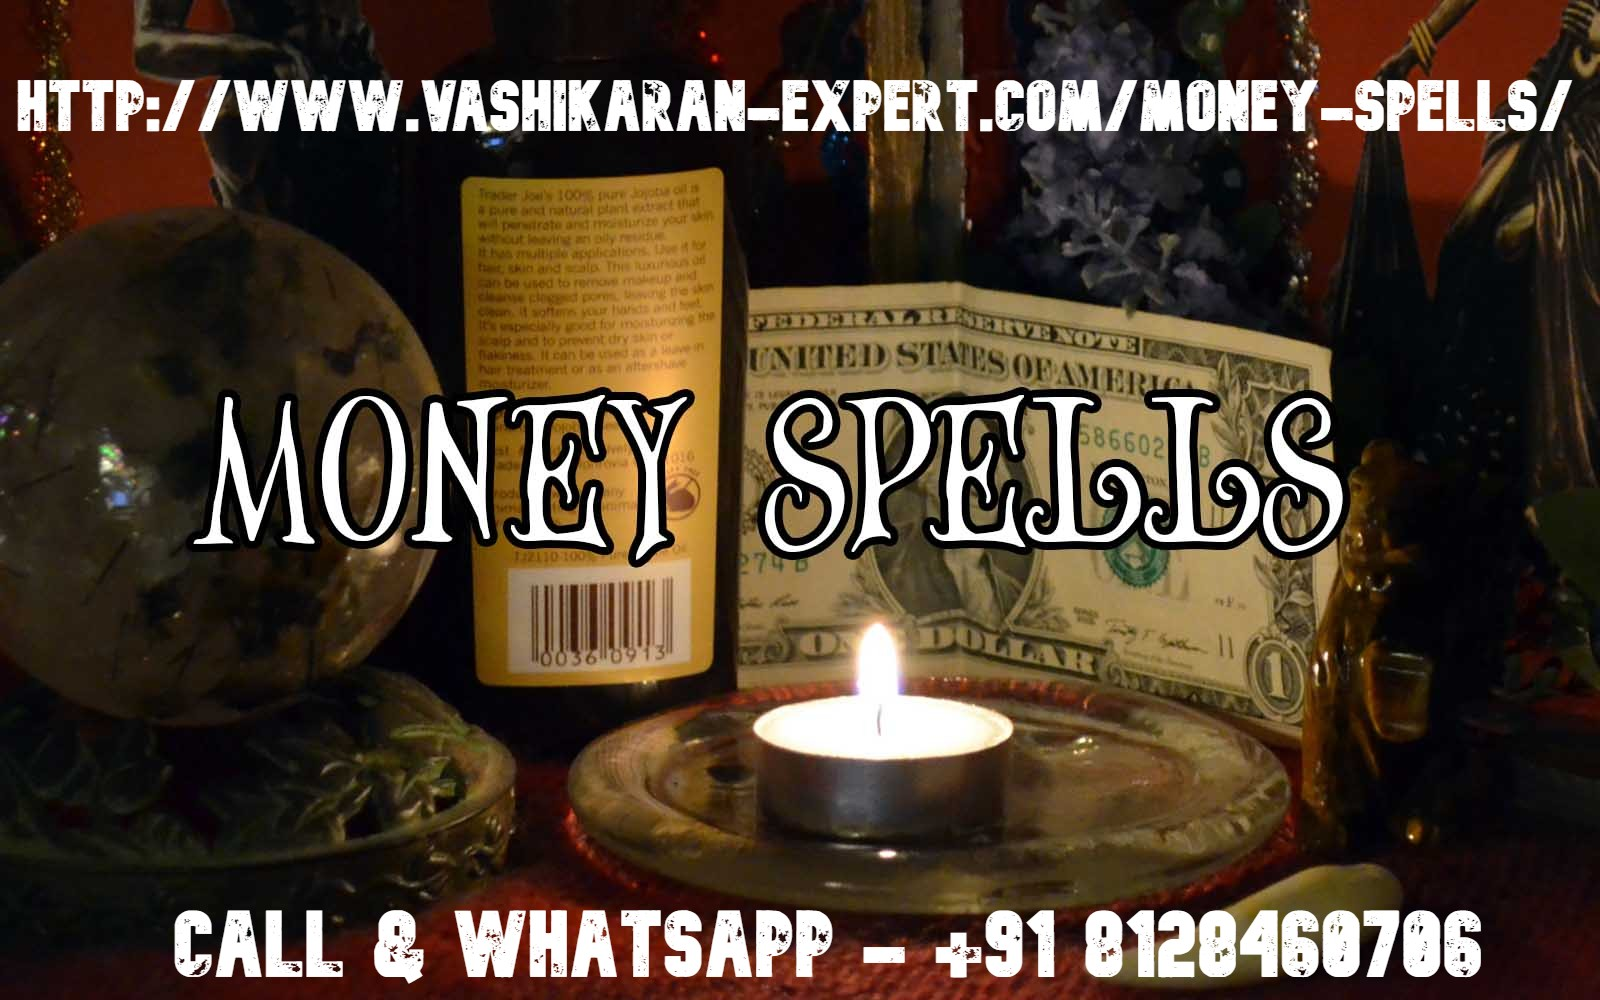 Money spells that work overnight